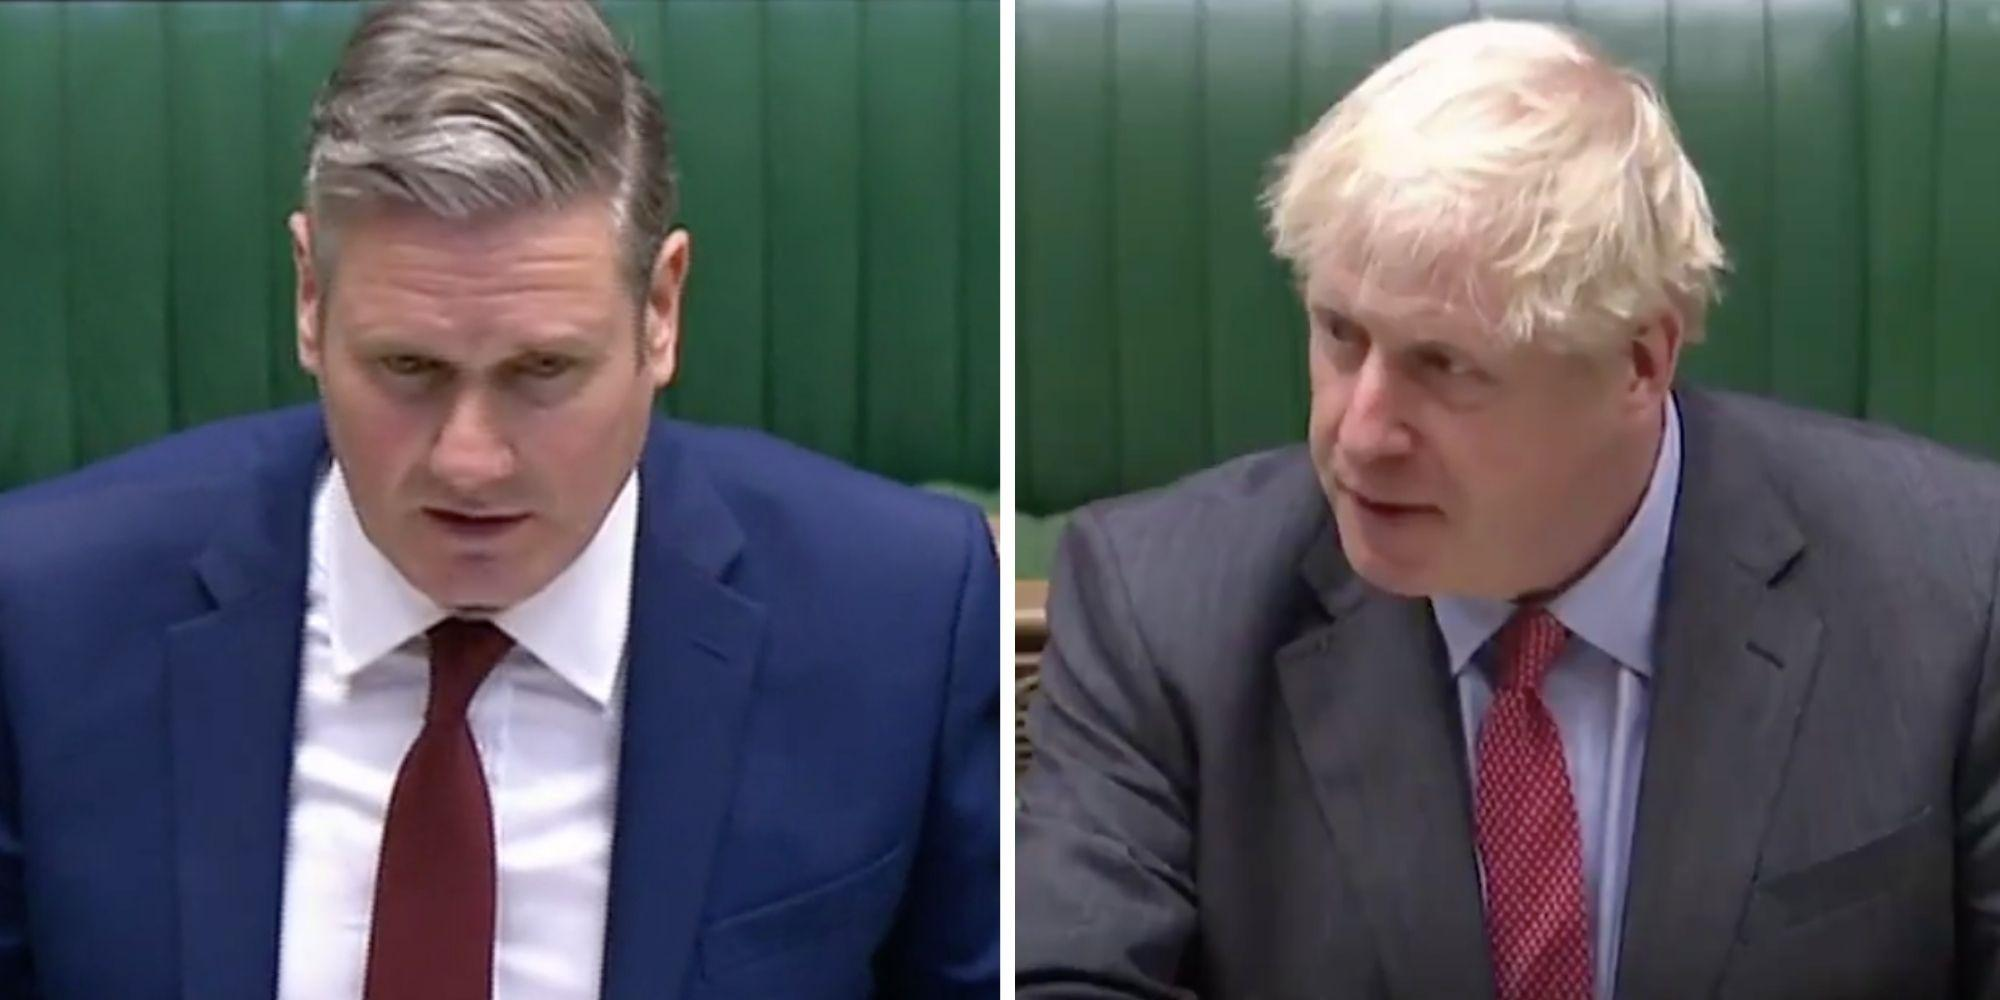 Keir Starmer dismantles Boris Johnson's major announcement with one crucial point